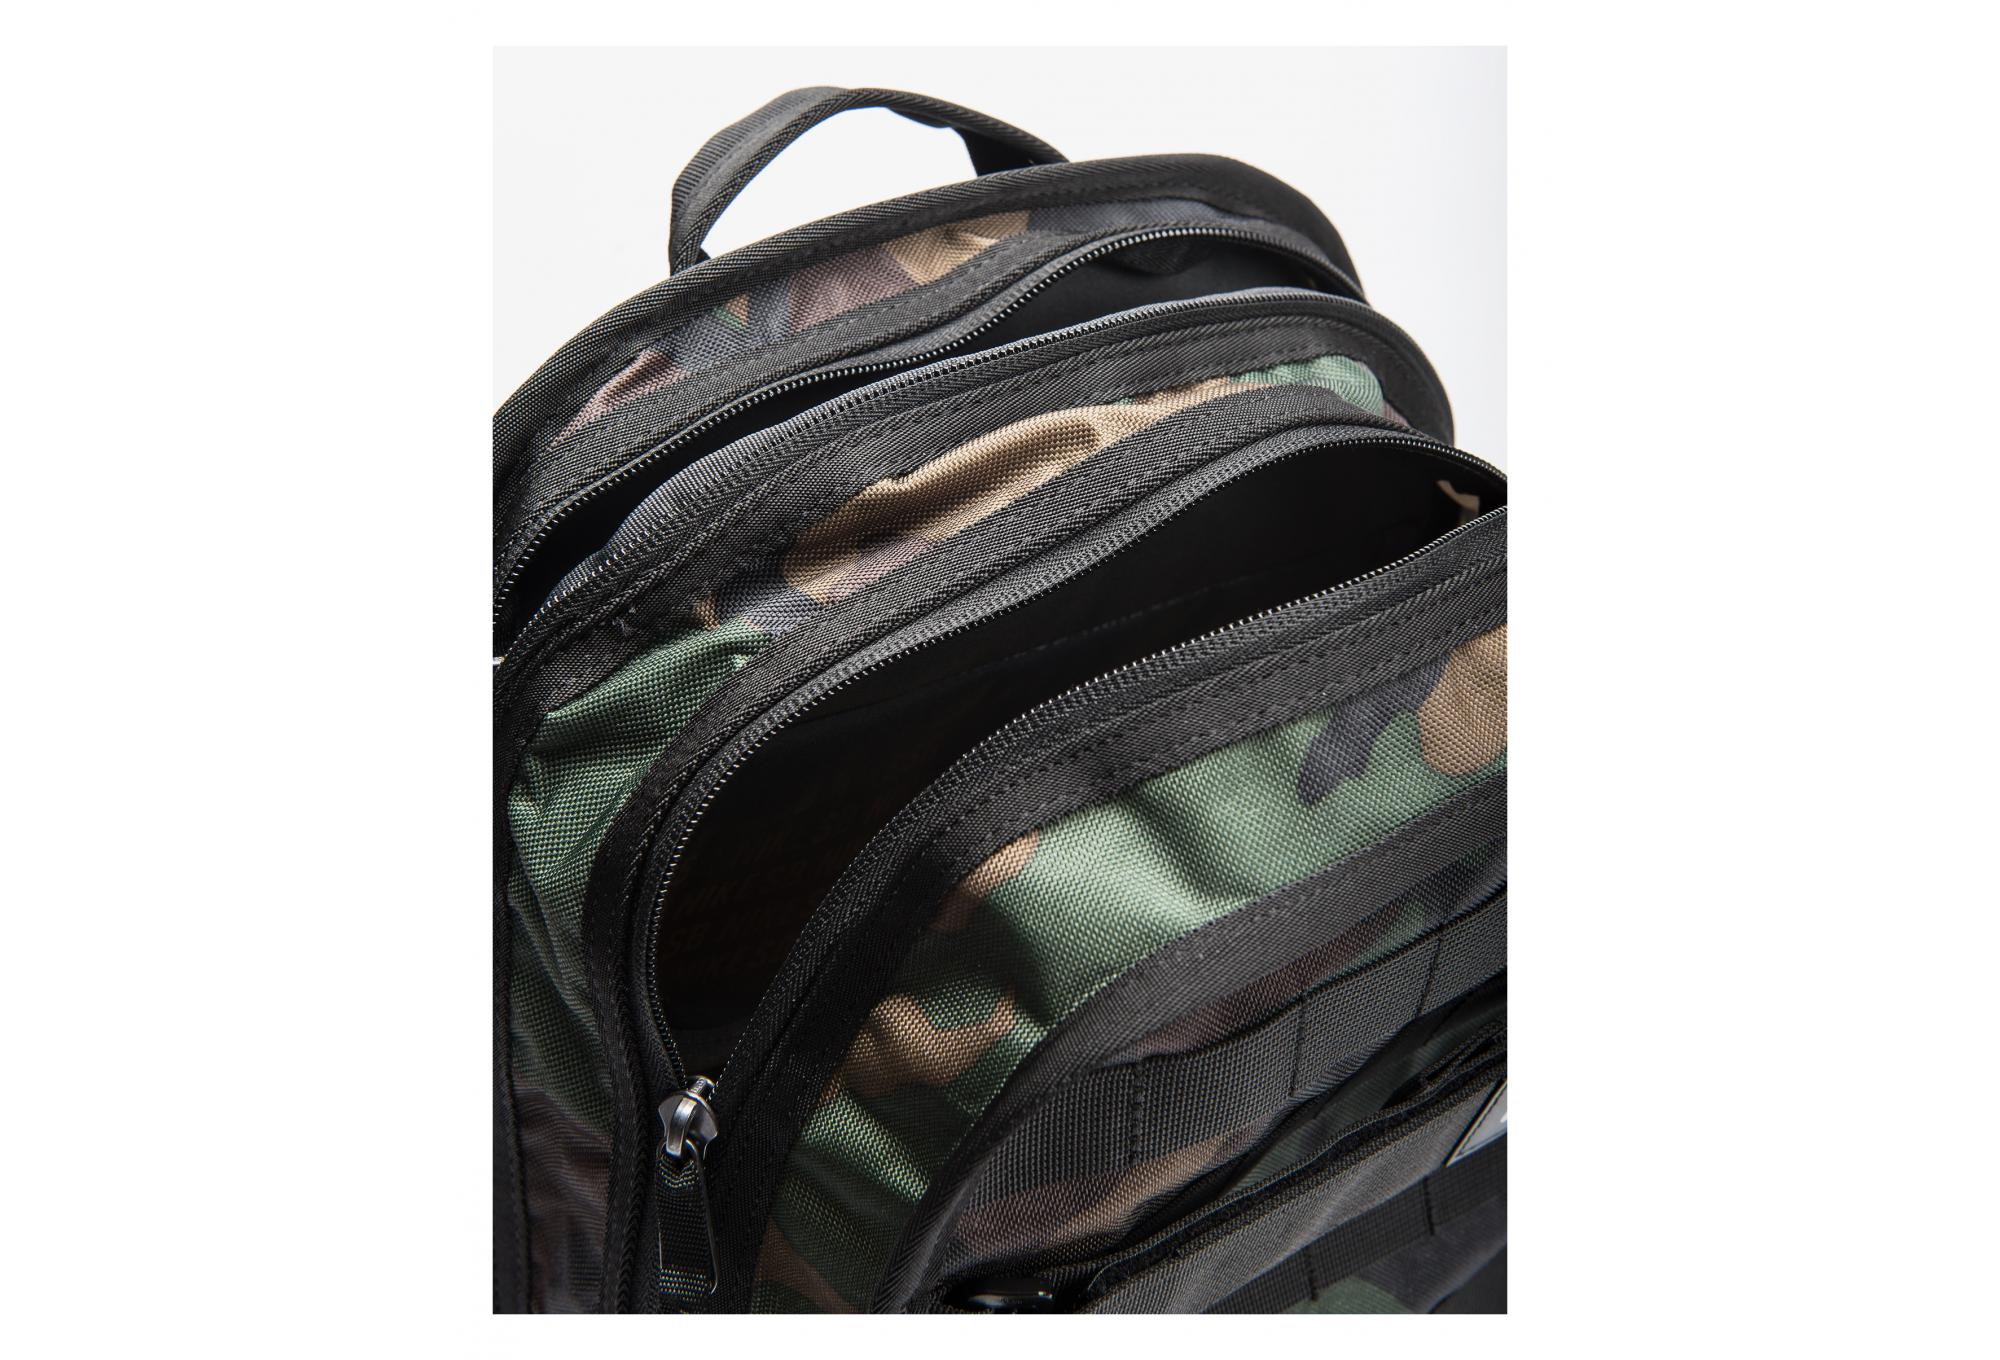 sac dos nike sb rpm skateboarding camo kaki. Black Bedroom Furniture Sets. Home Design Ideas